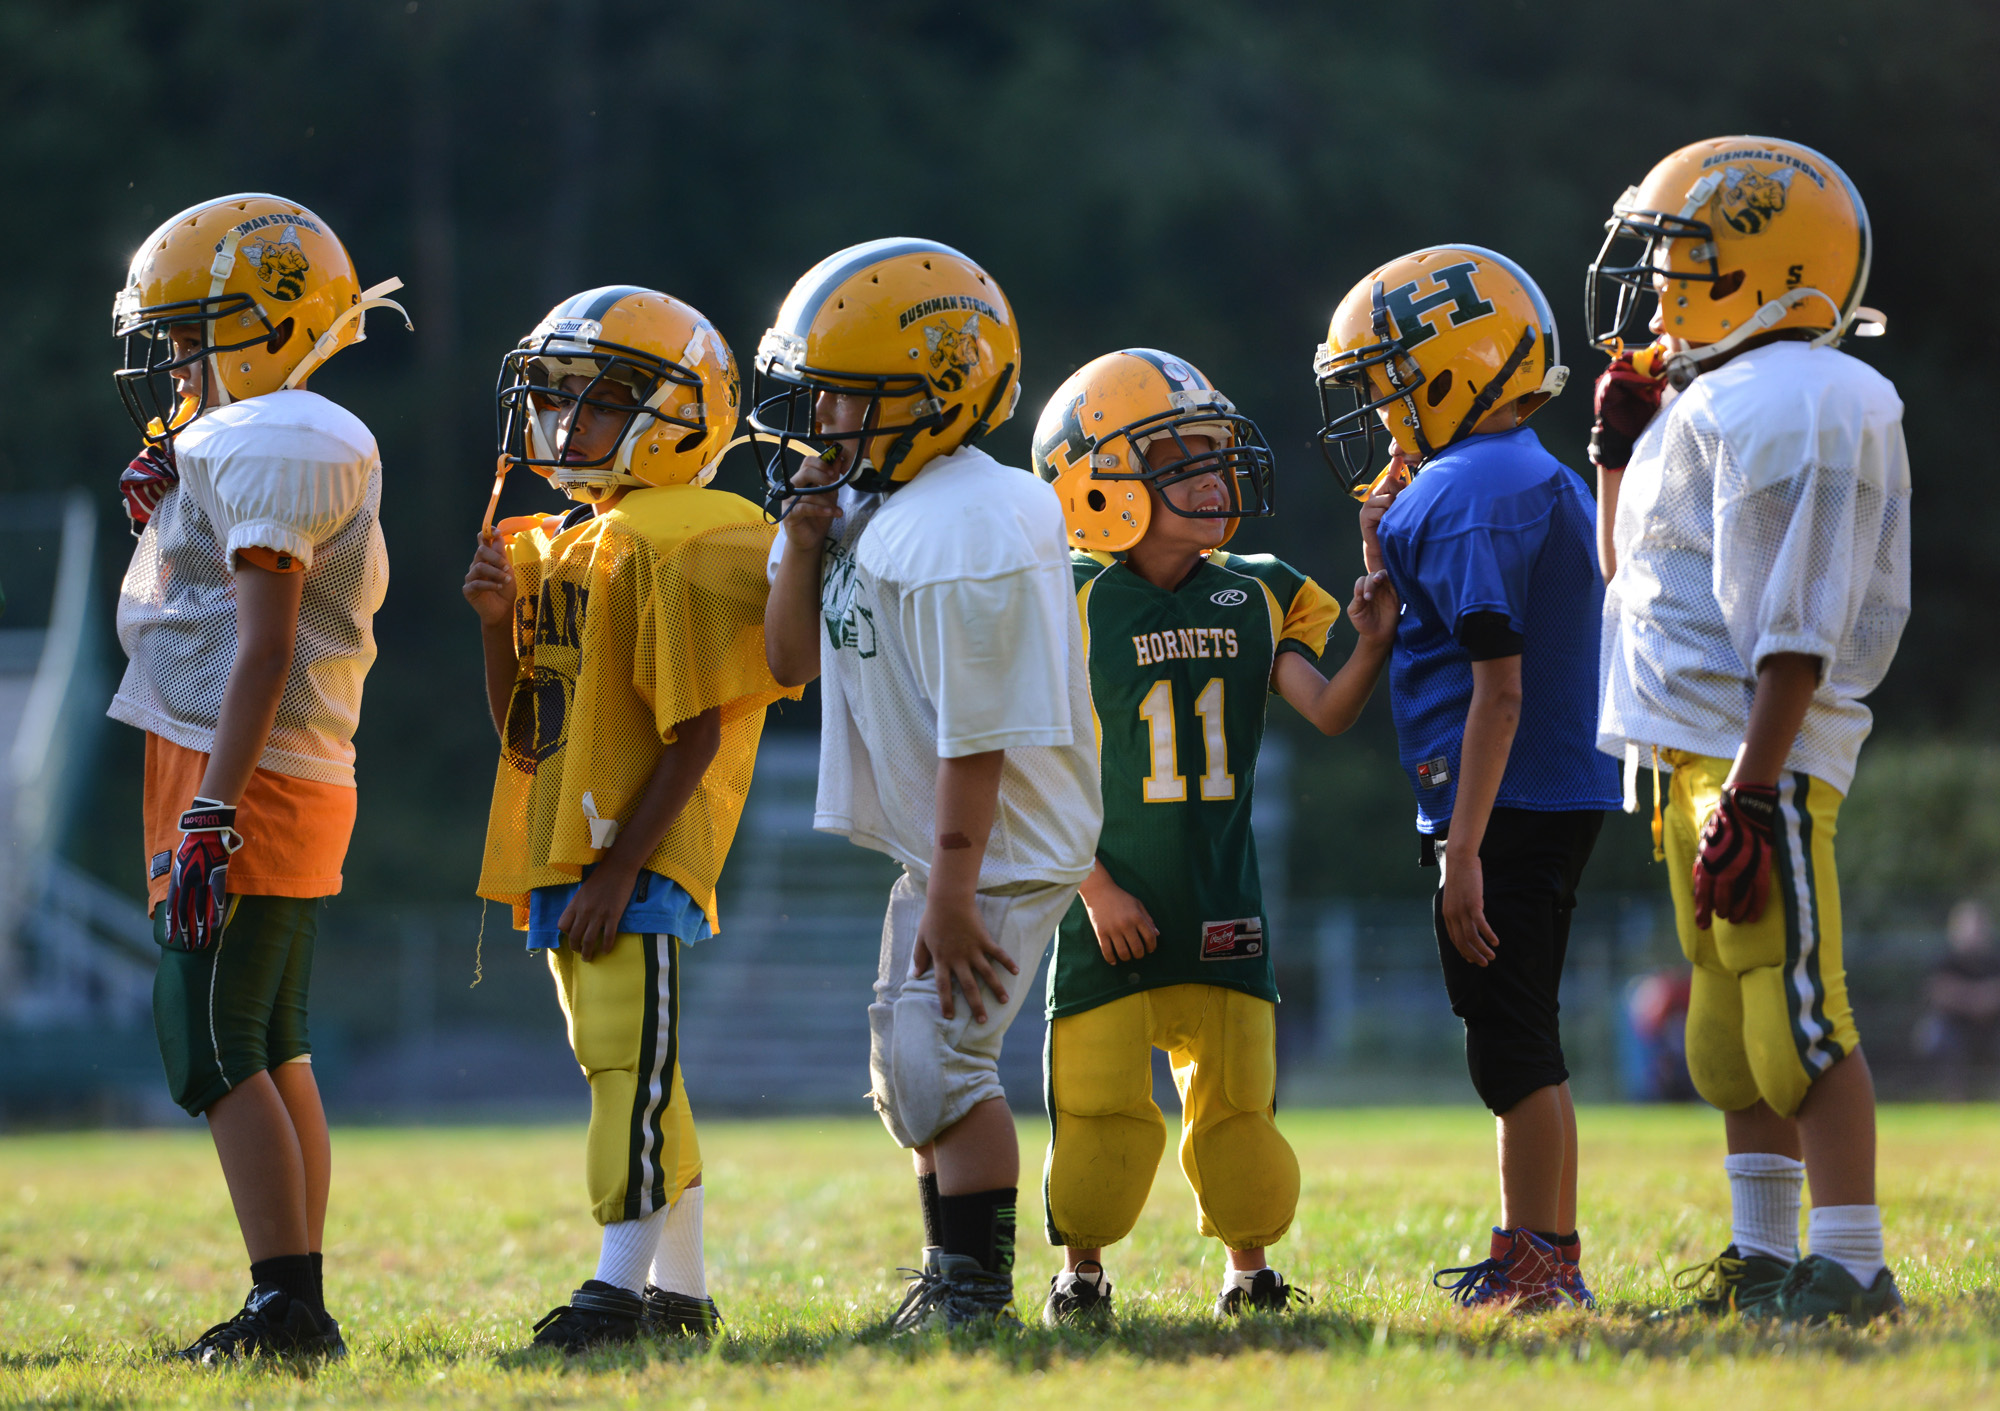 "6-year old Anton ""Tubby"" Clayborn Jr. (11) jokes around with a teammate during football practice at Bushman Stadium in Harrison Township on Tuesday, Sept. 15, 2015. On Saturday, the Highland Hornets youth football team arranged for Anton to make a touchdown against the Butler Knights. Anton has a rare brain disorder that has required many surgeries and is mostly on the sidelines as he cannot be tackled."